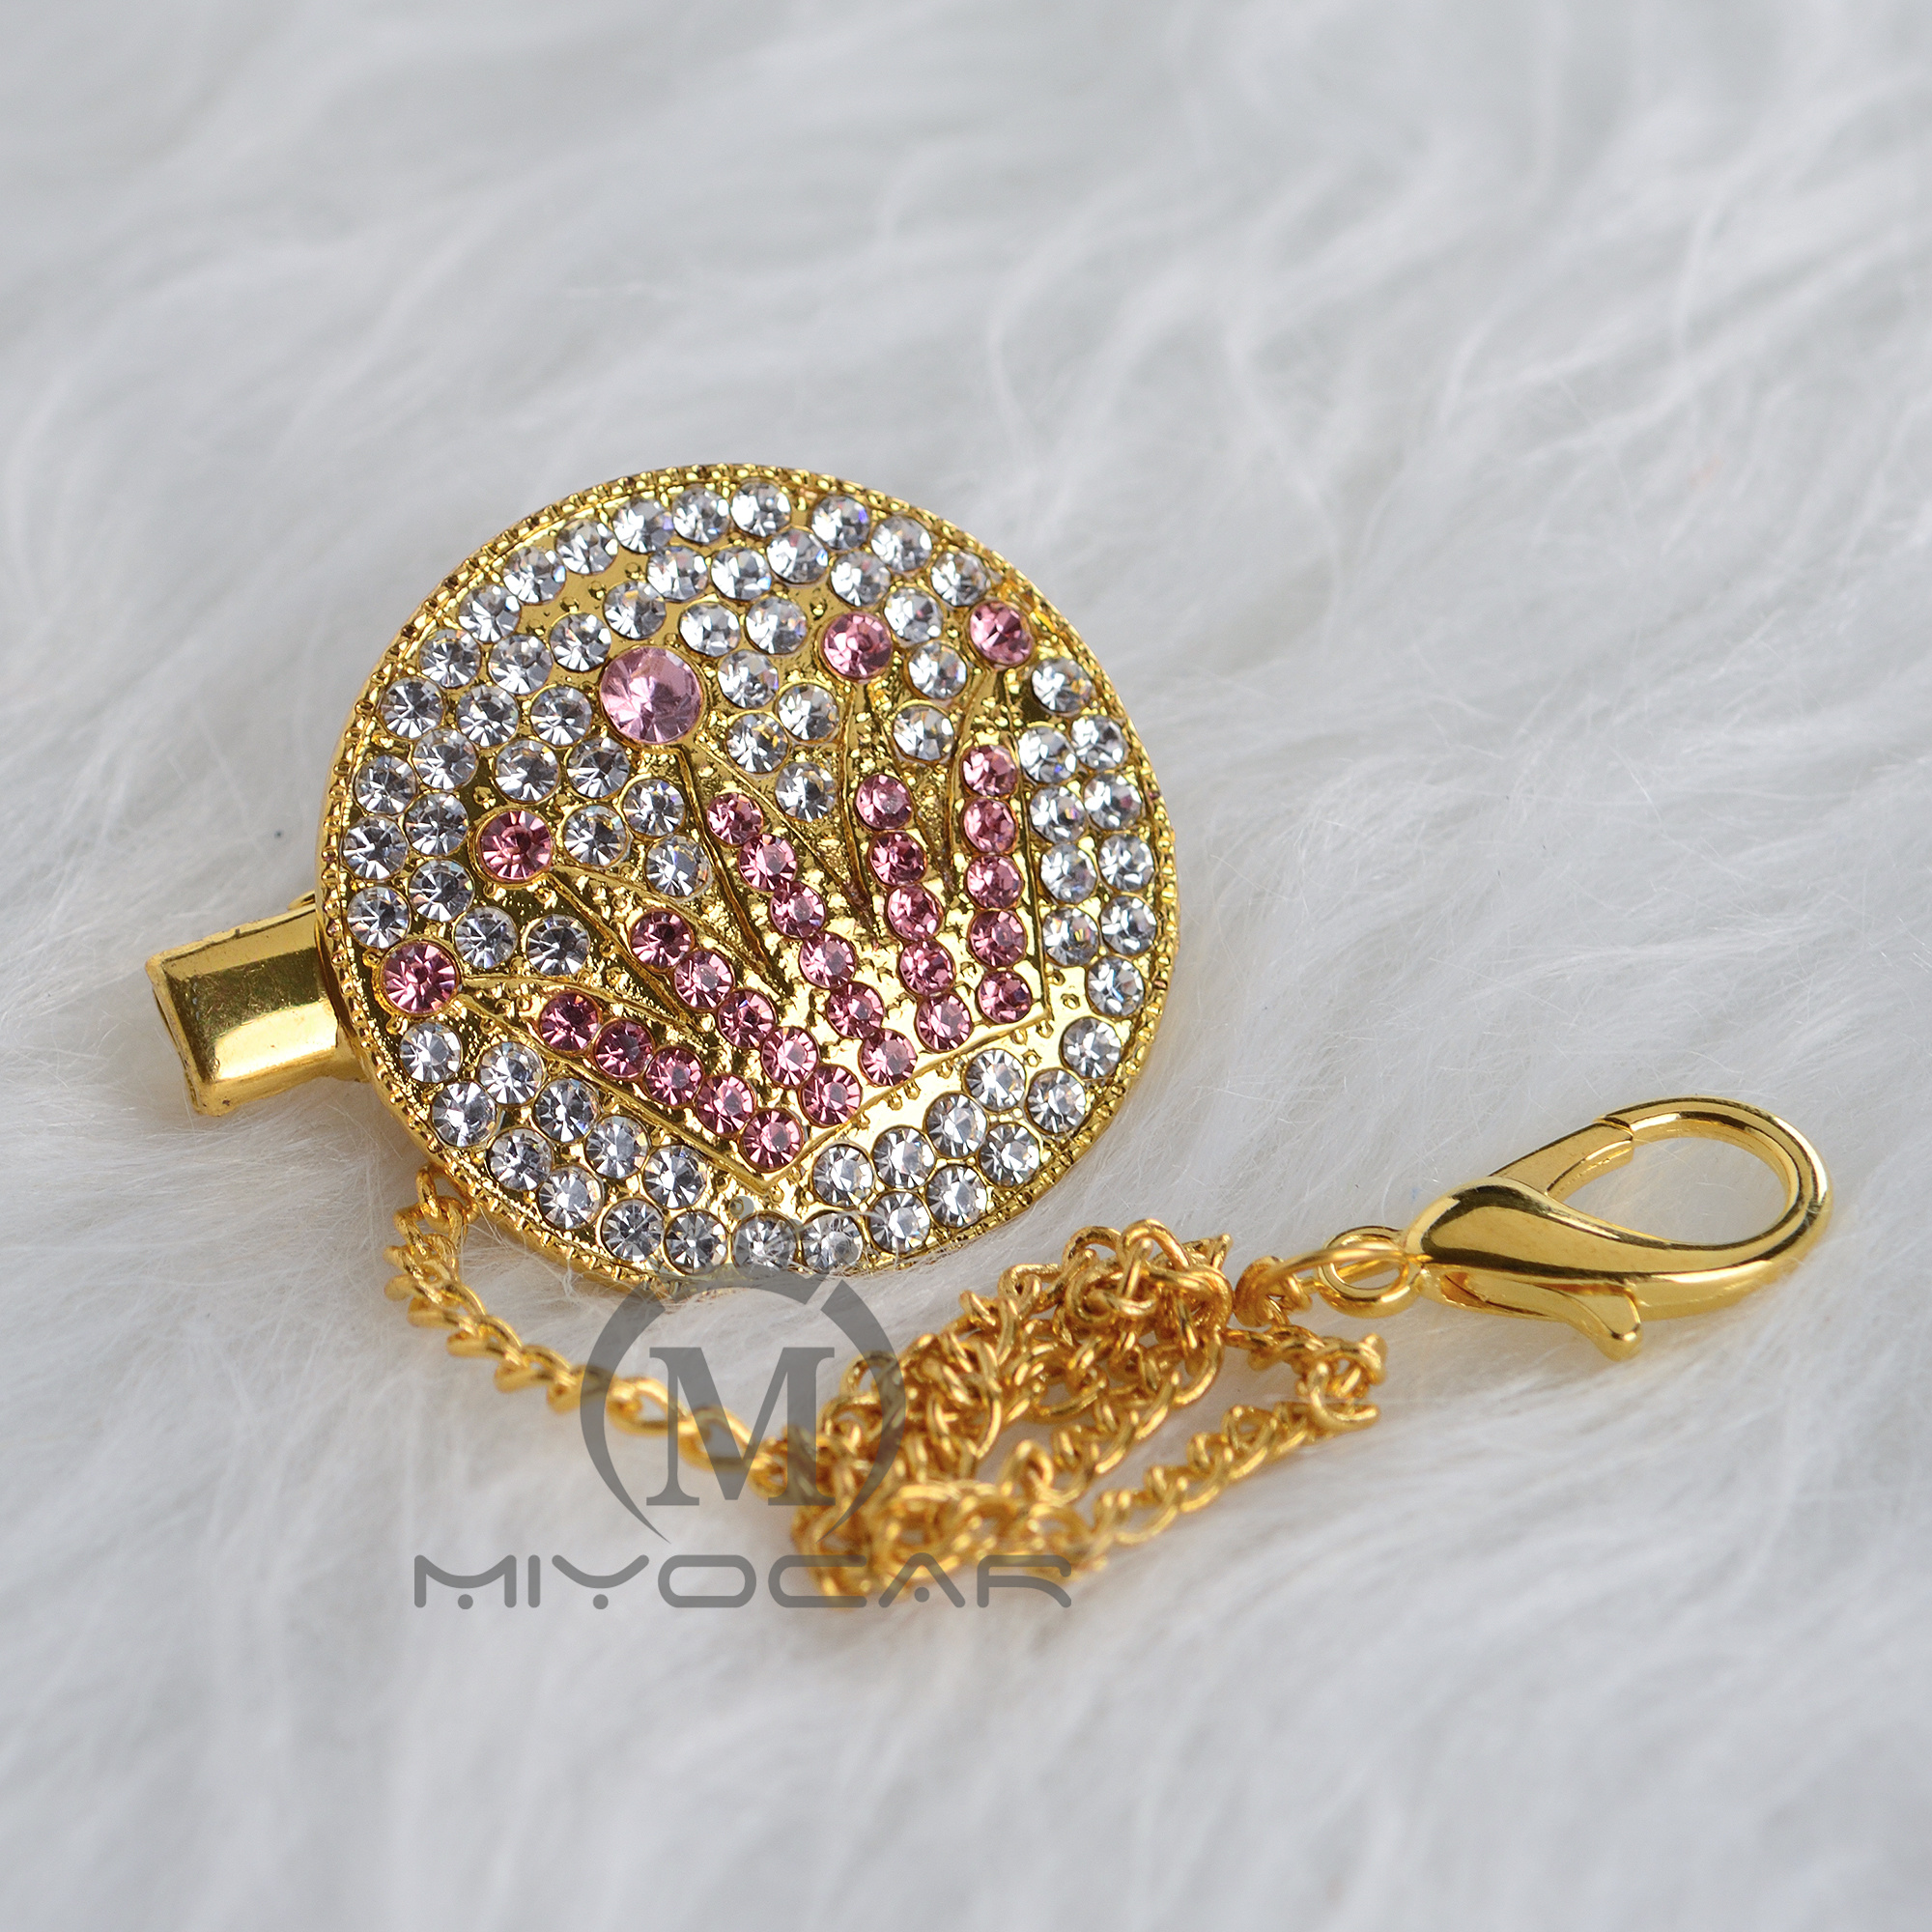 MIYOCAR Bling Handmade Pink Crown Pacifier Clip Pacifier Chain Holder Dummy Clip Metal Chain Safe To Baby CH-1